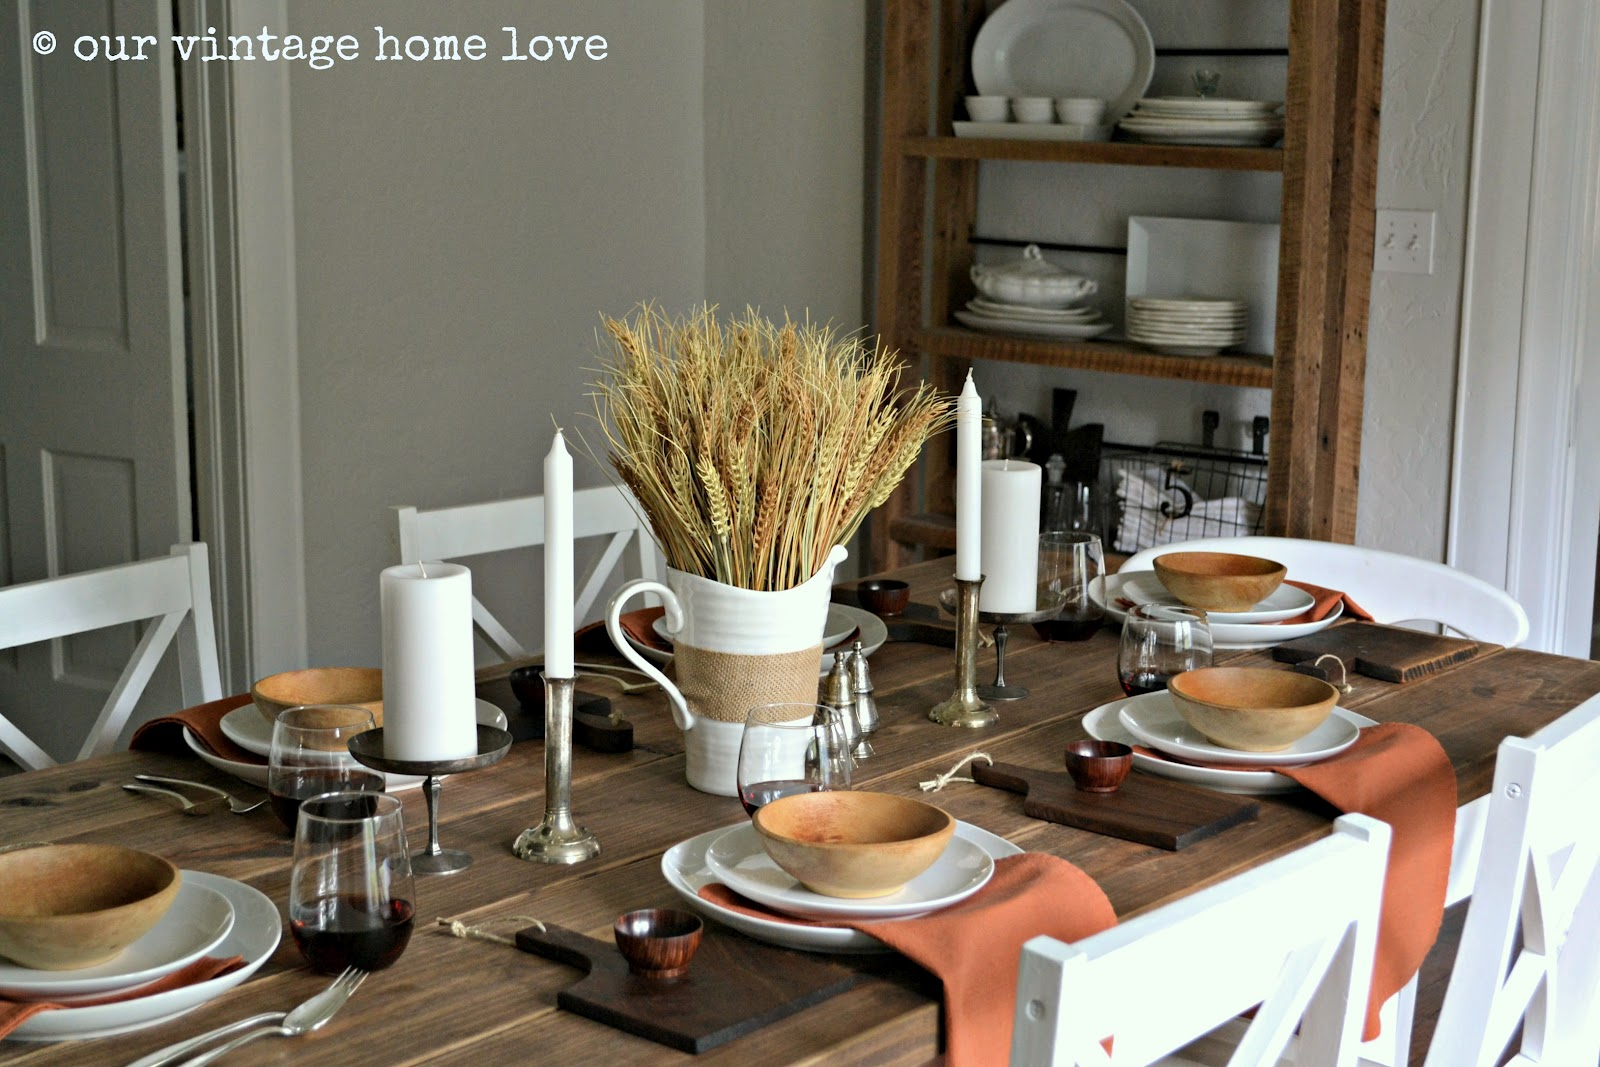 Table Decorations: Vintage Home Love: Autumn Table Decor And A Vintage